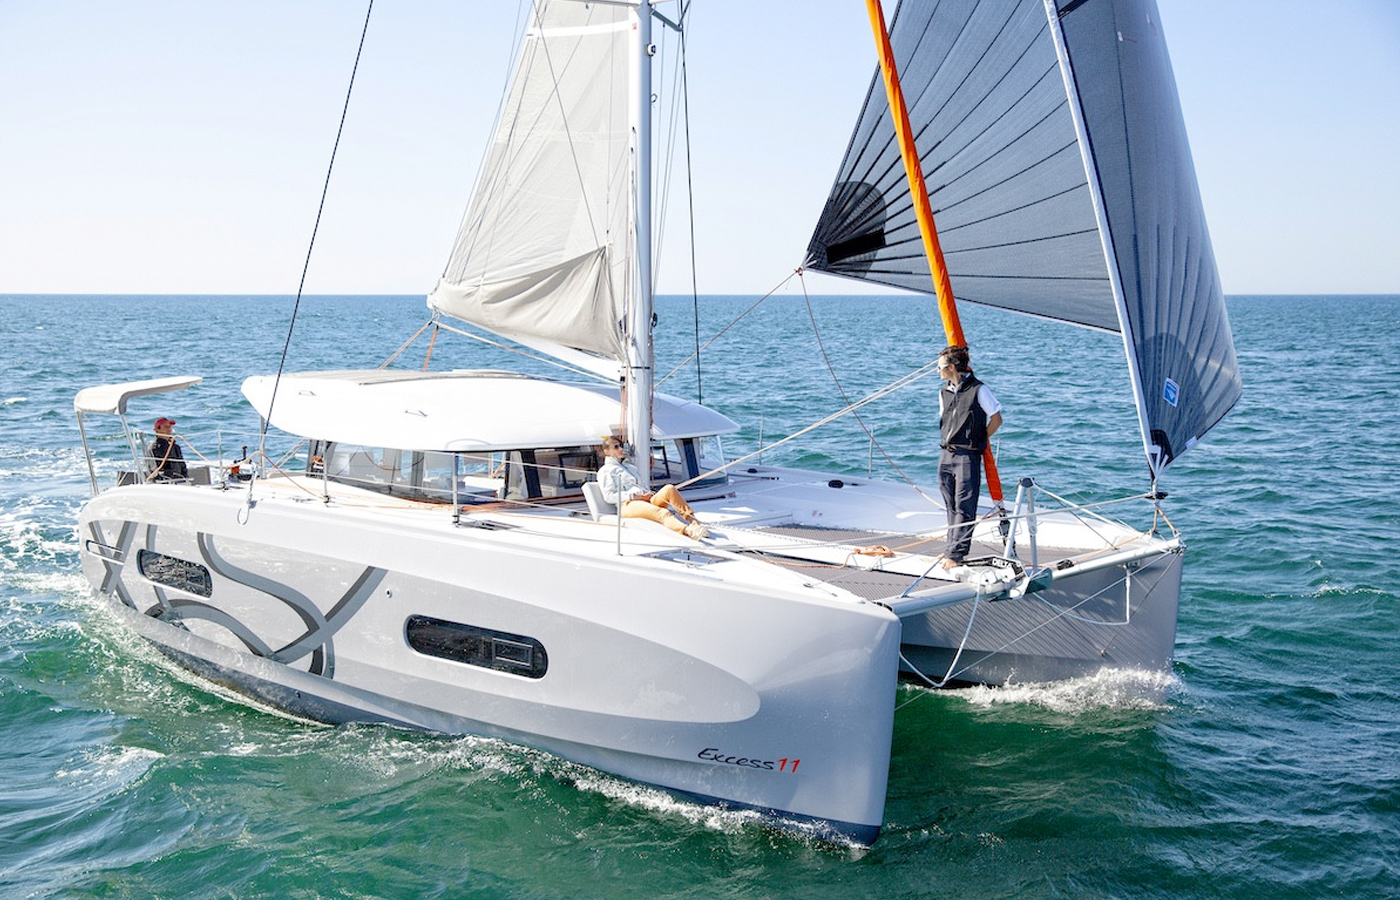 3 Things You Didn't Know About The Excess 11 Catamaran